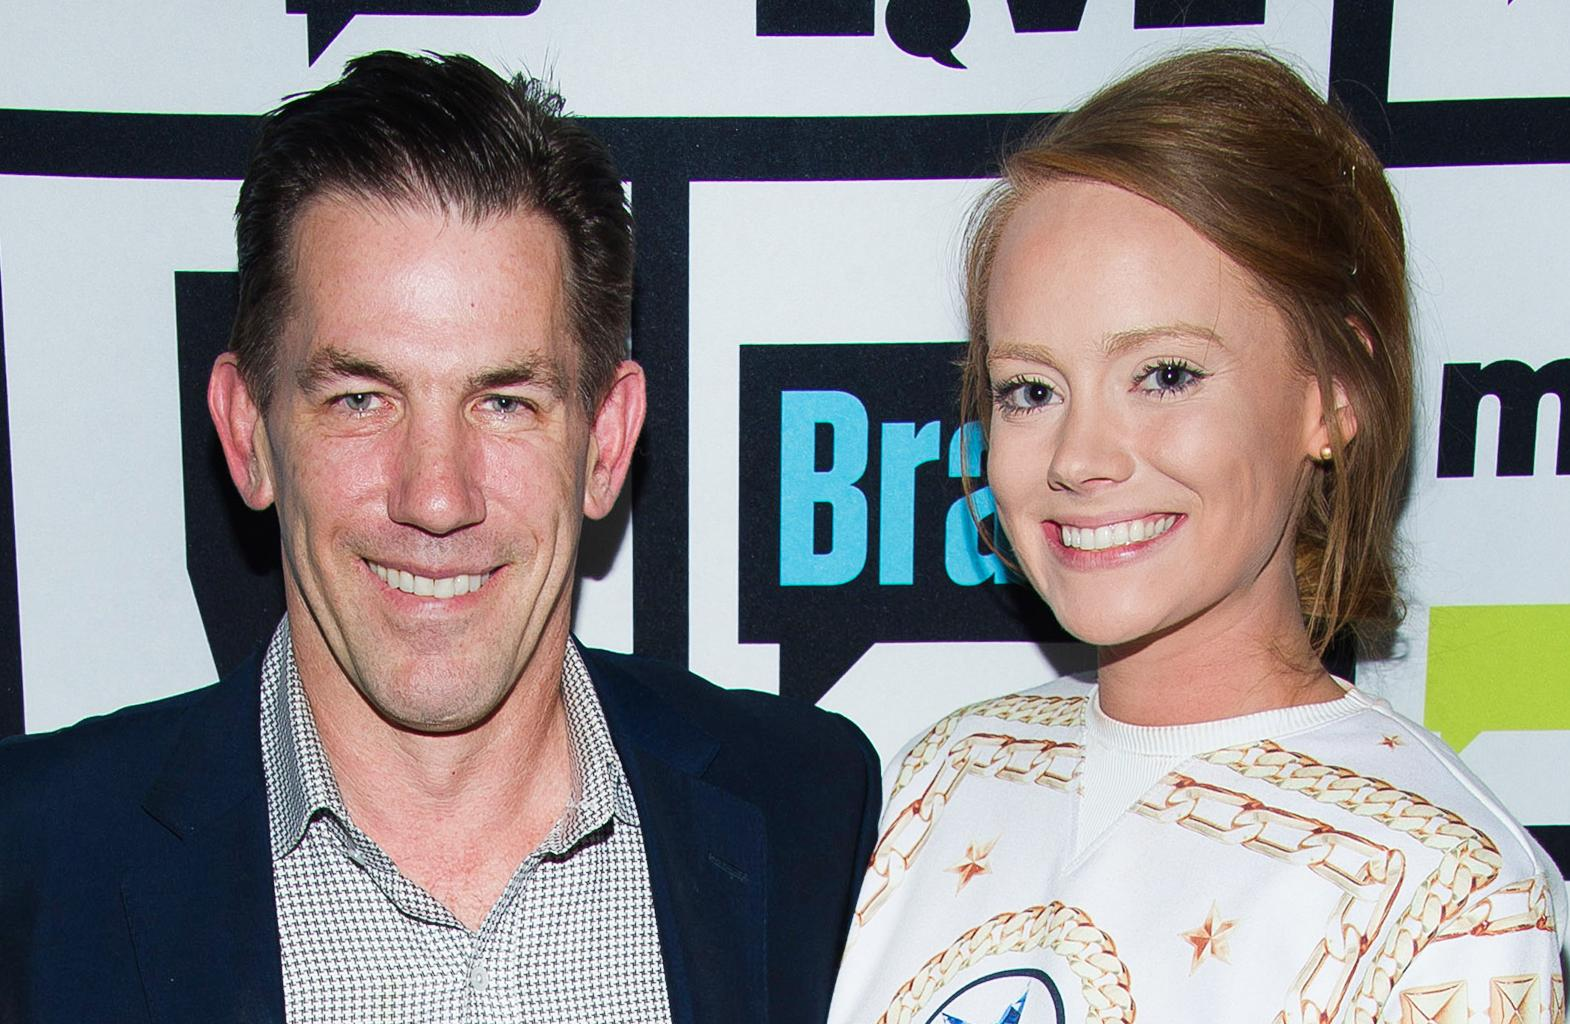 Southern Charm: Thomas Ravenel Says He 'Never' Will Date Kathryn Dennis Again As Fans Beg Her To Stay Away